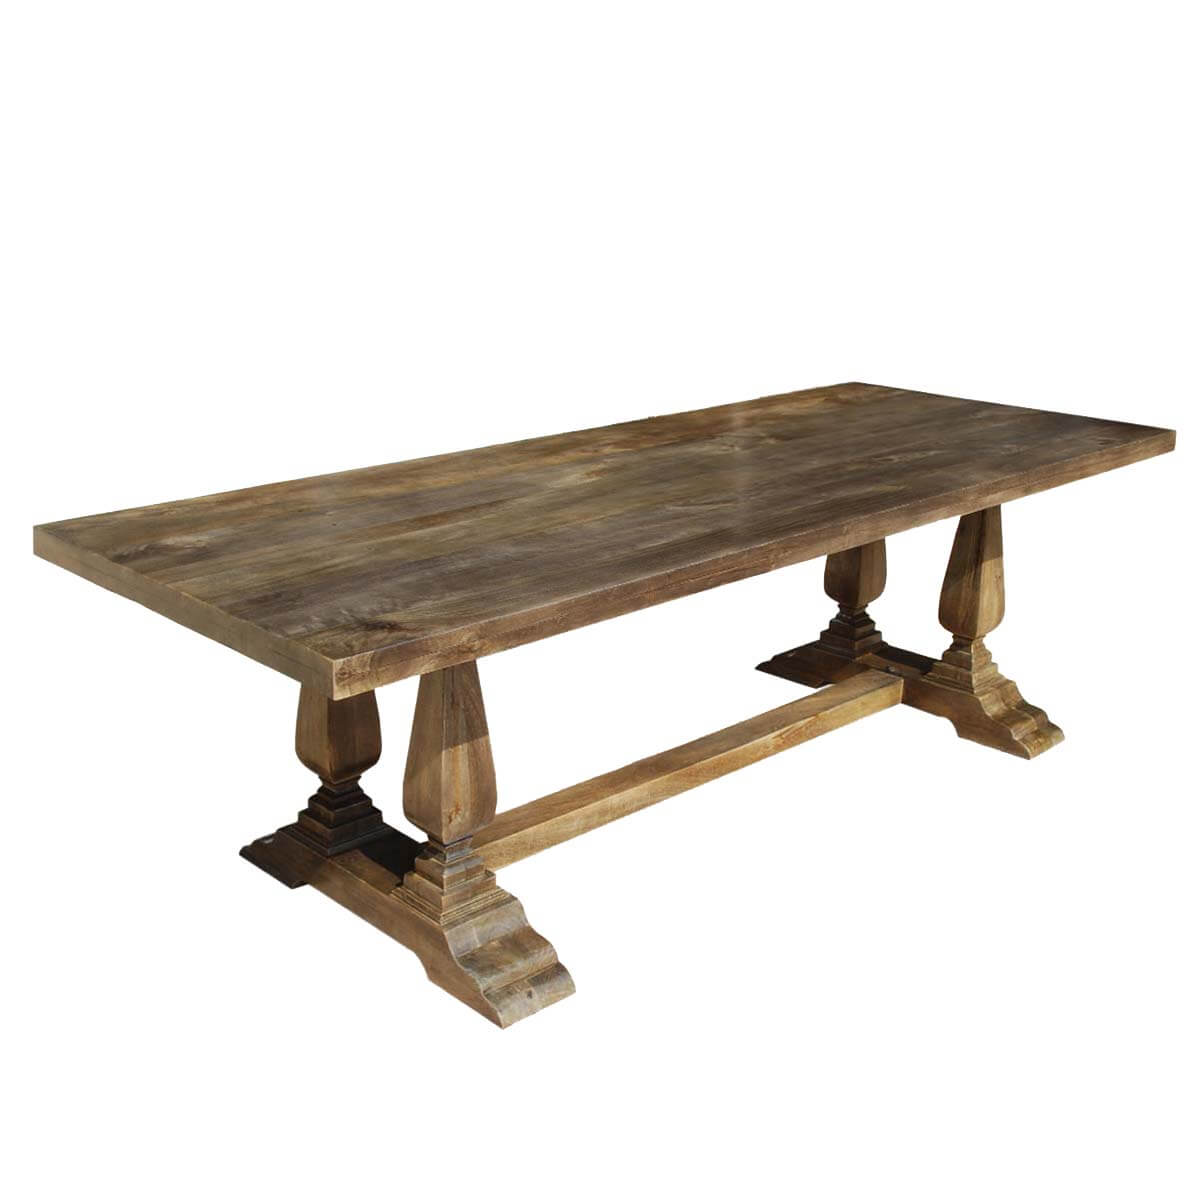 Pelham rustic 98 solid wood trestle pedestal dining table Rustic wood dining table